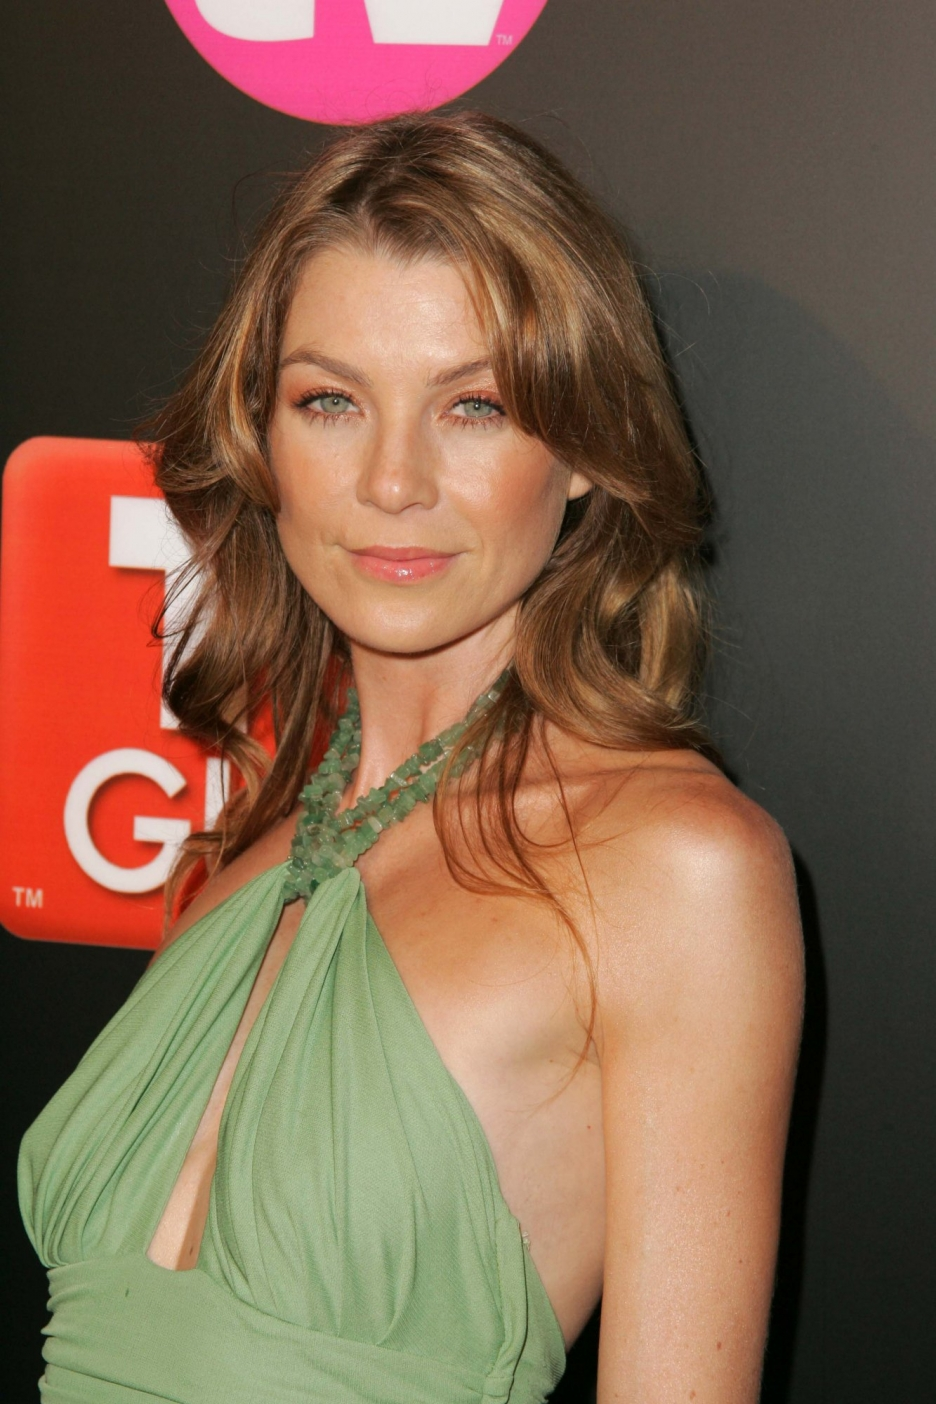 ellen pompeo gif huntellen pompeo husband, ellen pompeo wiki, ellen pompeo 2017, ellen pompeo vk, ellen pompeo house, ellen pompeo insta, ellen pompeo son, ellen pompeo director, ellen pompeo tumblr, ellen pompeo and justin chambers, ellen pompeo and jake gyllenhaal, ellen pompeo style, ellen pompeo and sandra oh, ellen pompeo salary, ellen pompeo toes, ellen pompeo gif hunt, ellen pompeo facts, ellen pompeo news, ellen pompeo i, ellen pompeo earnings